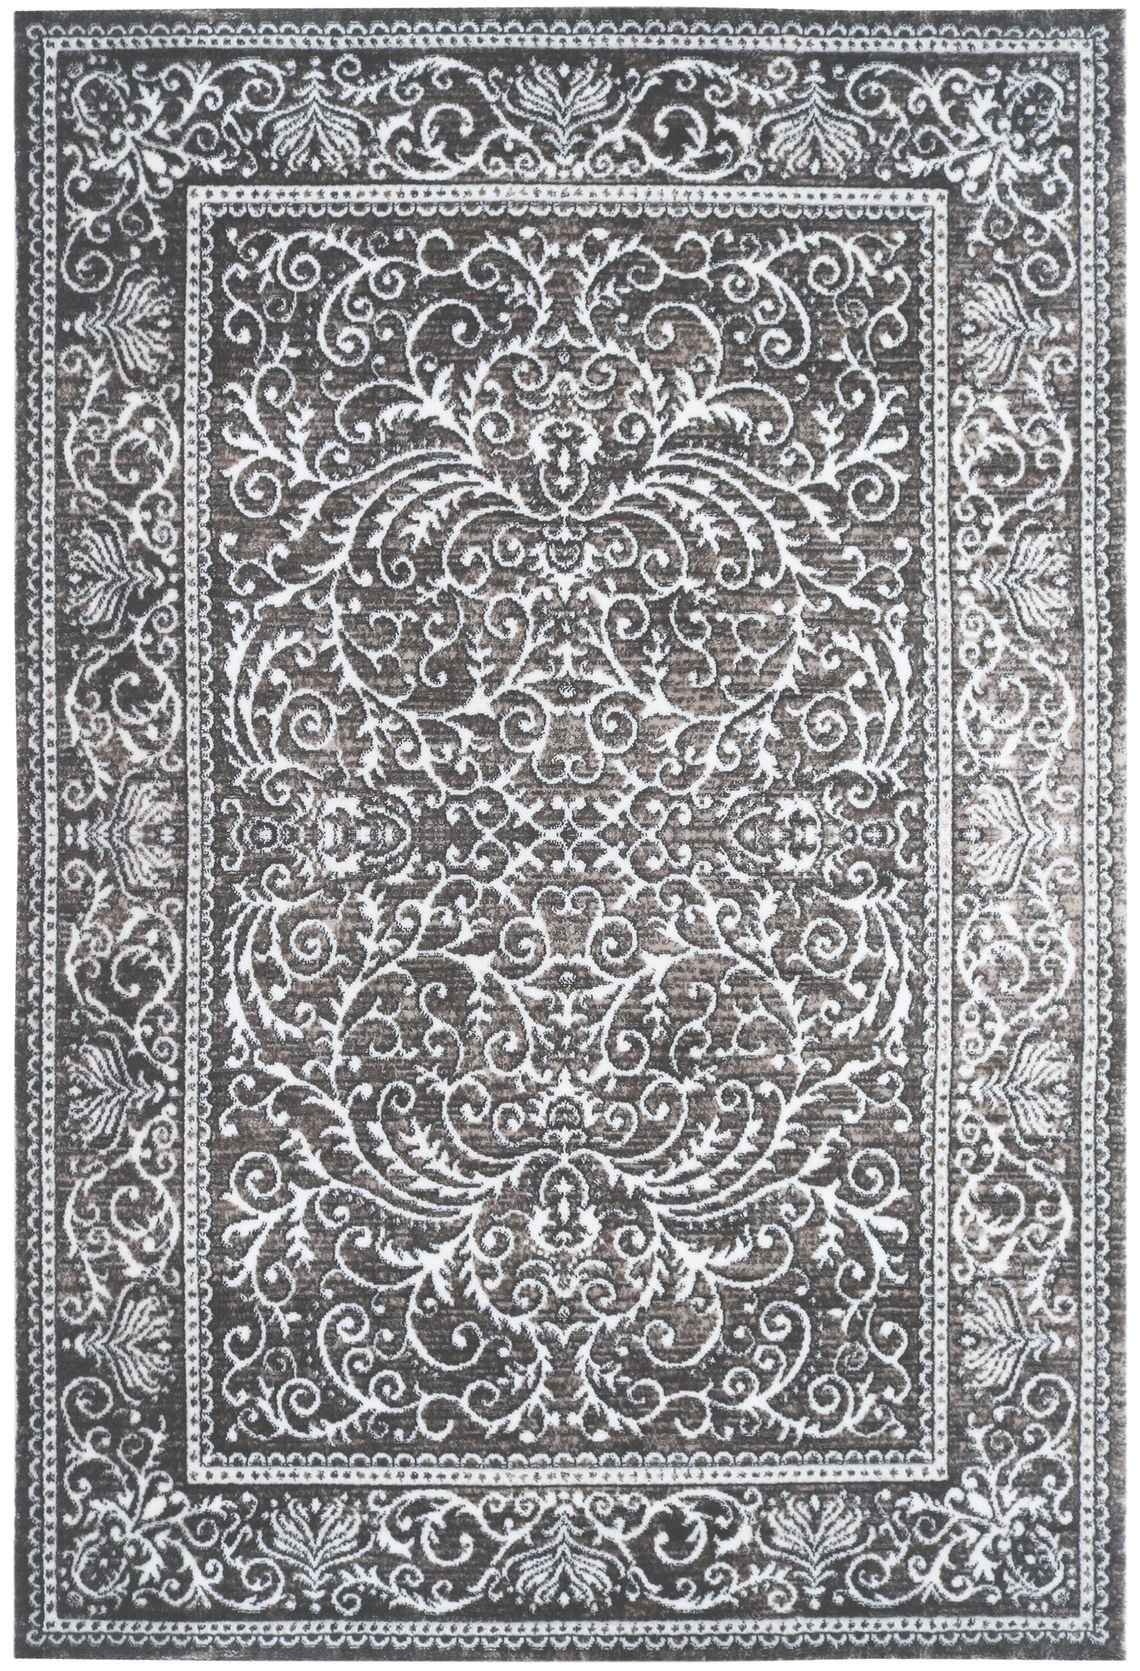 tapis oriental pas cher carrelage design tapis oriental pas cher moderne charmant tapis. Black Bedroom Furniture Sets. Home Design Ideas